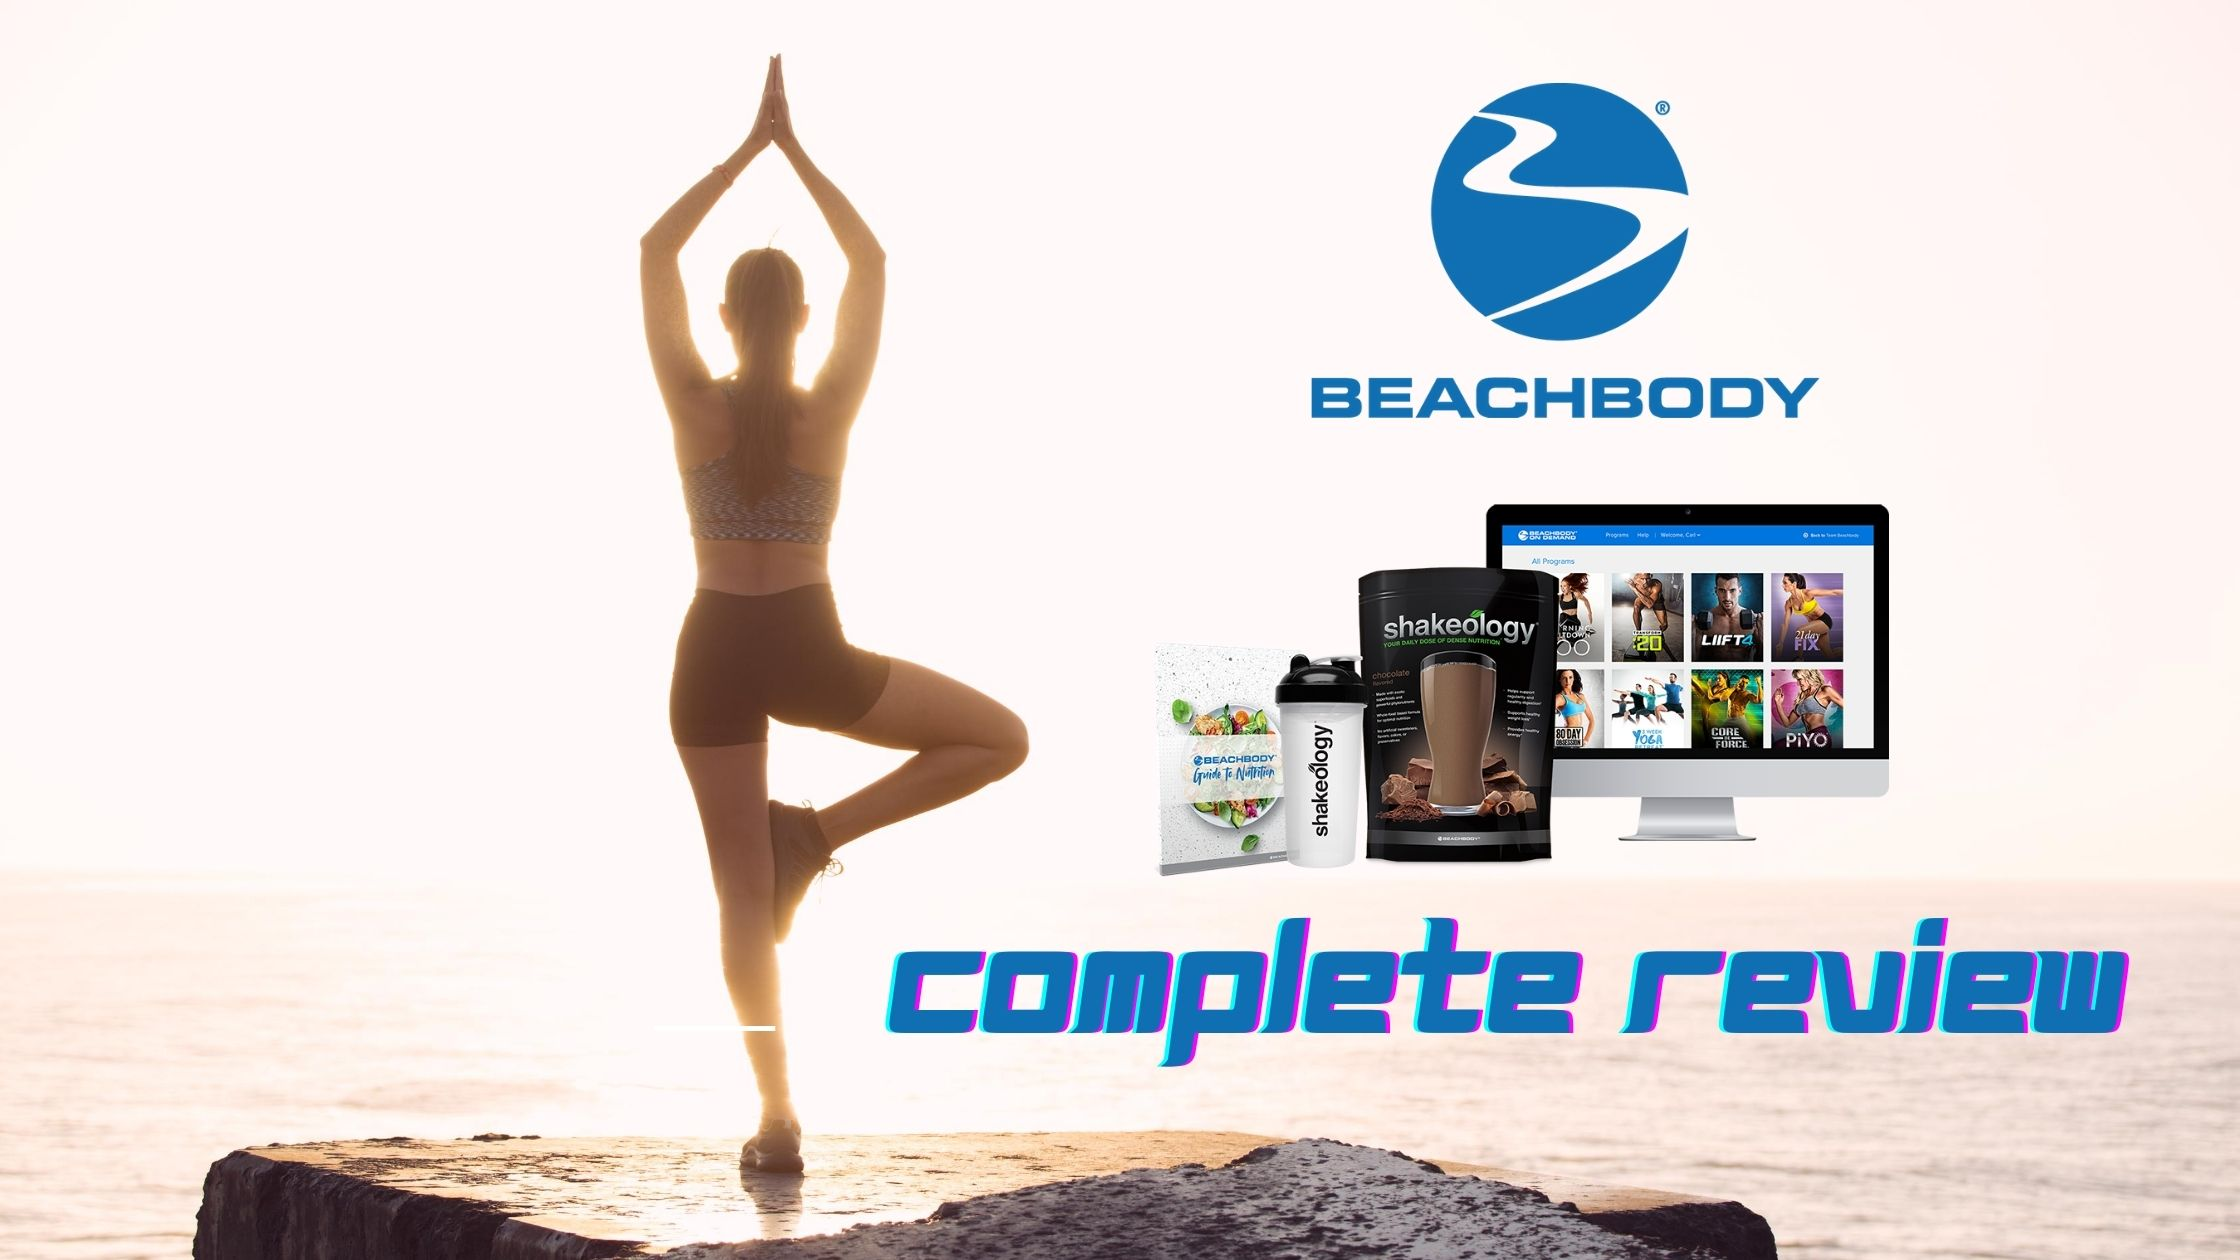 Beachbody Review : About Team Beachbody and Its MLM Program